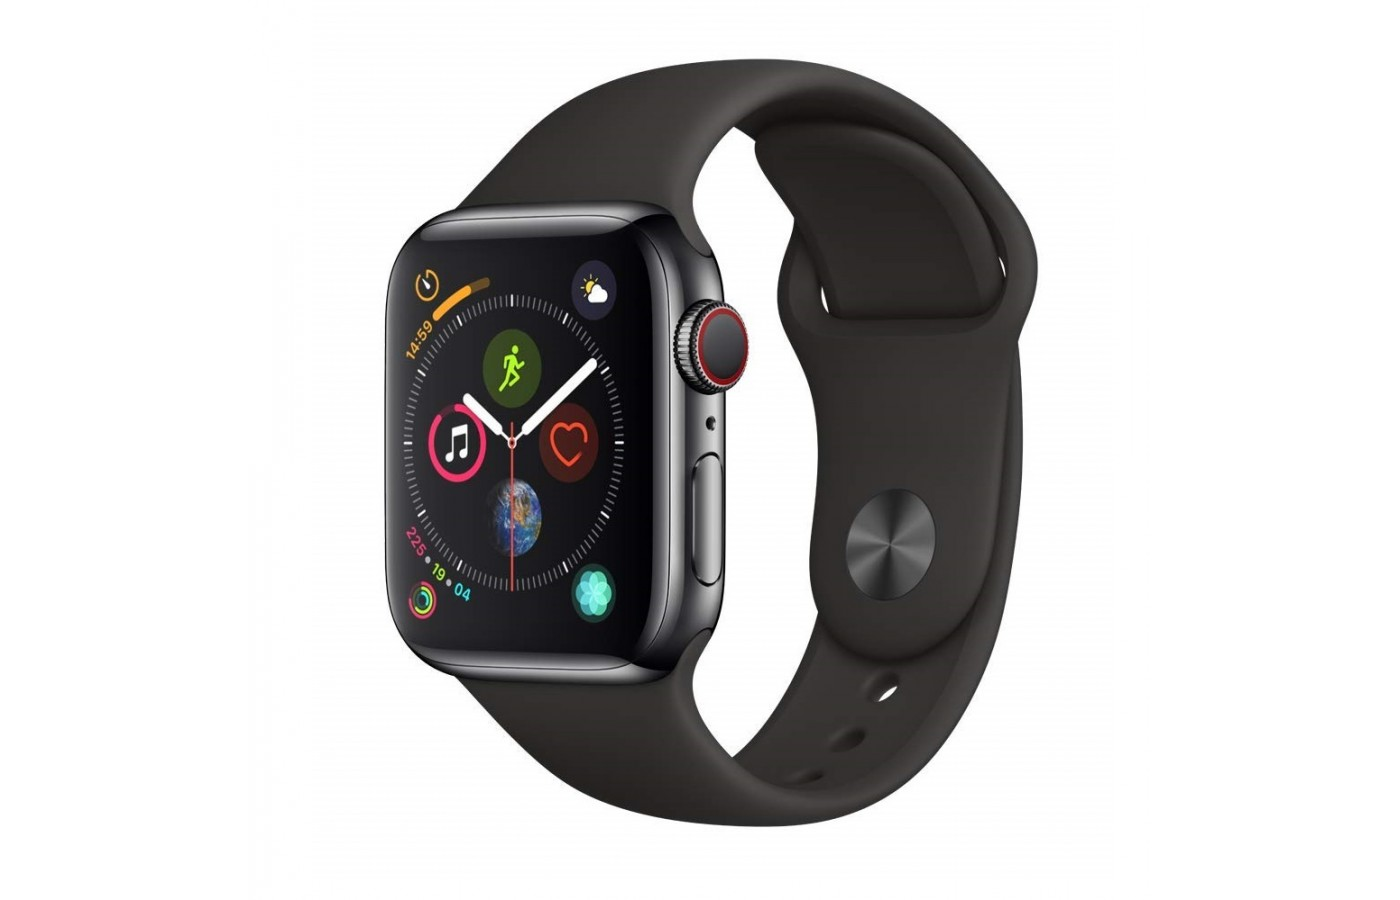 The Apple Watch Series 4 offers a silicone band in order to offer superior comfort.